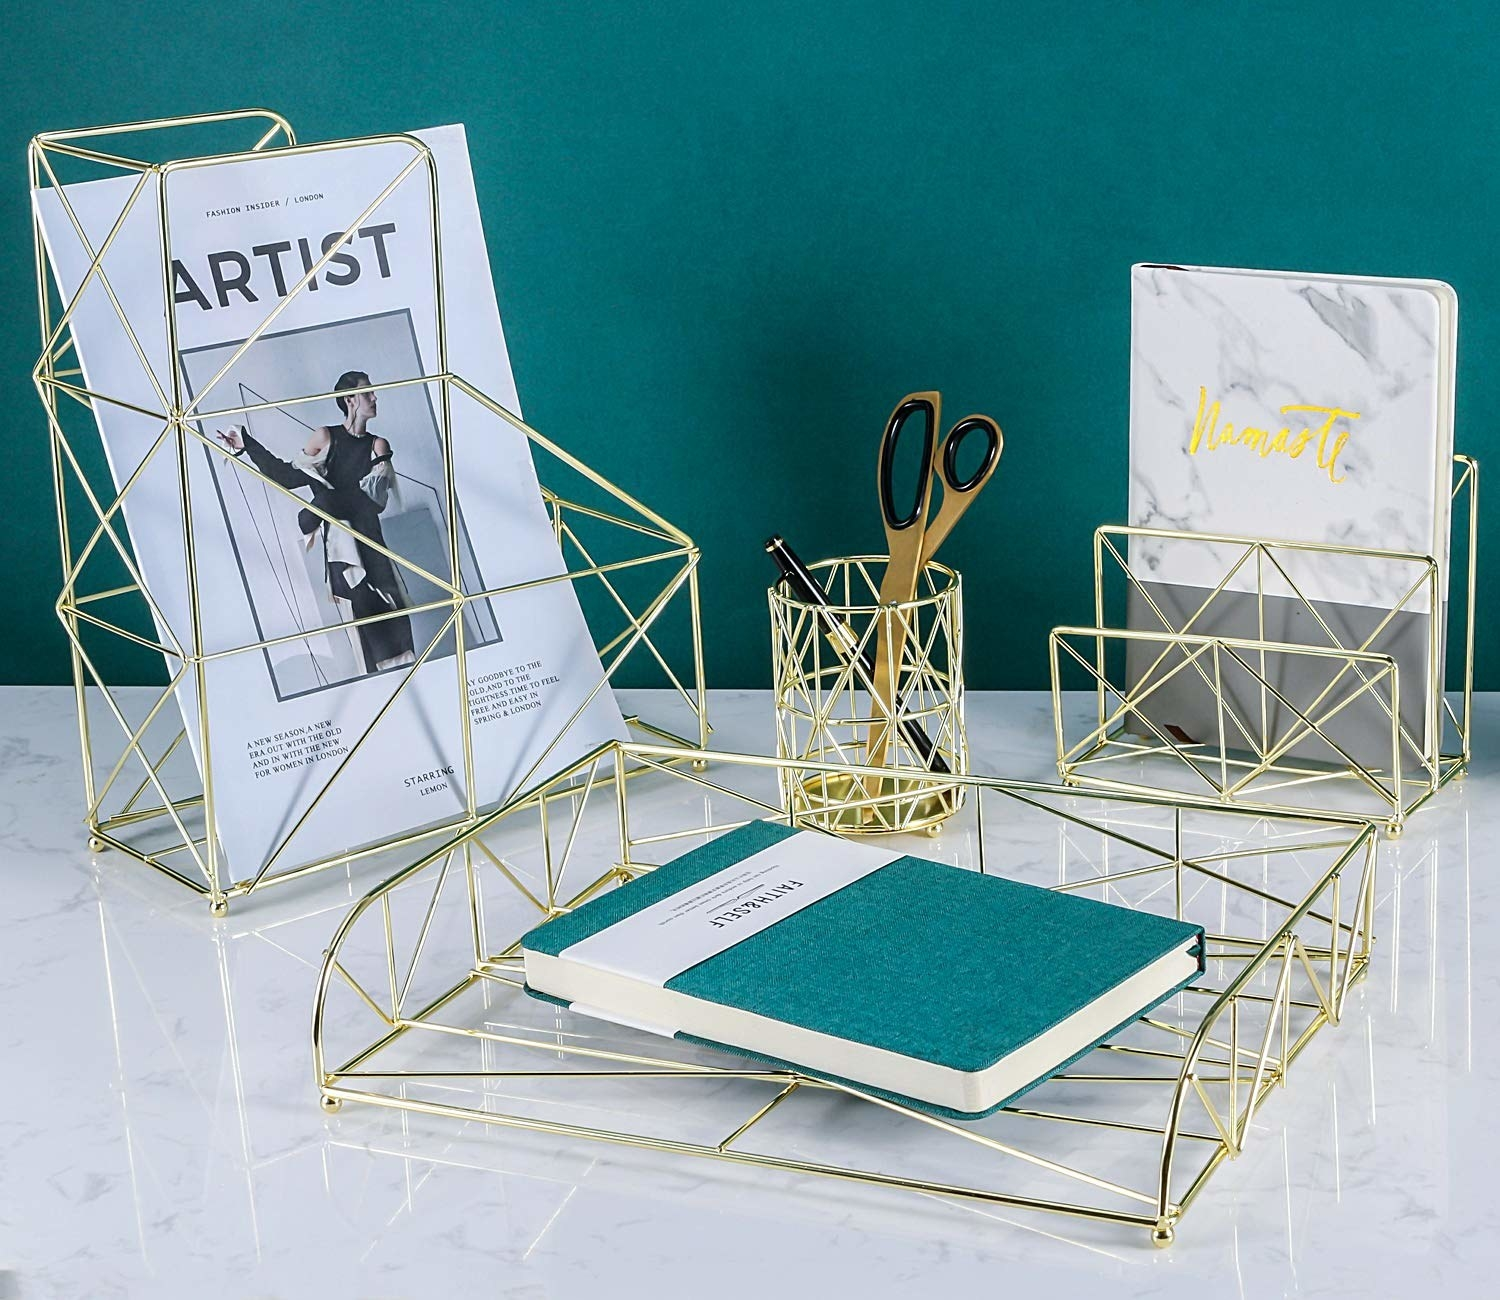 A metal magazine holder, A pencil holder, and a paper tray on a table